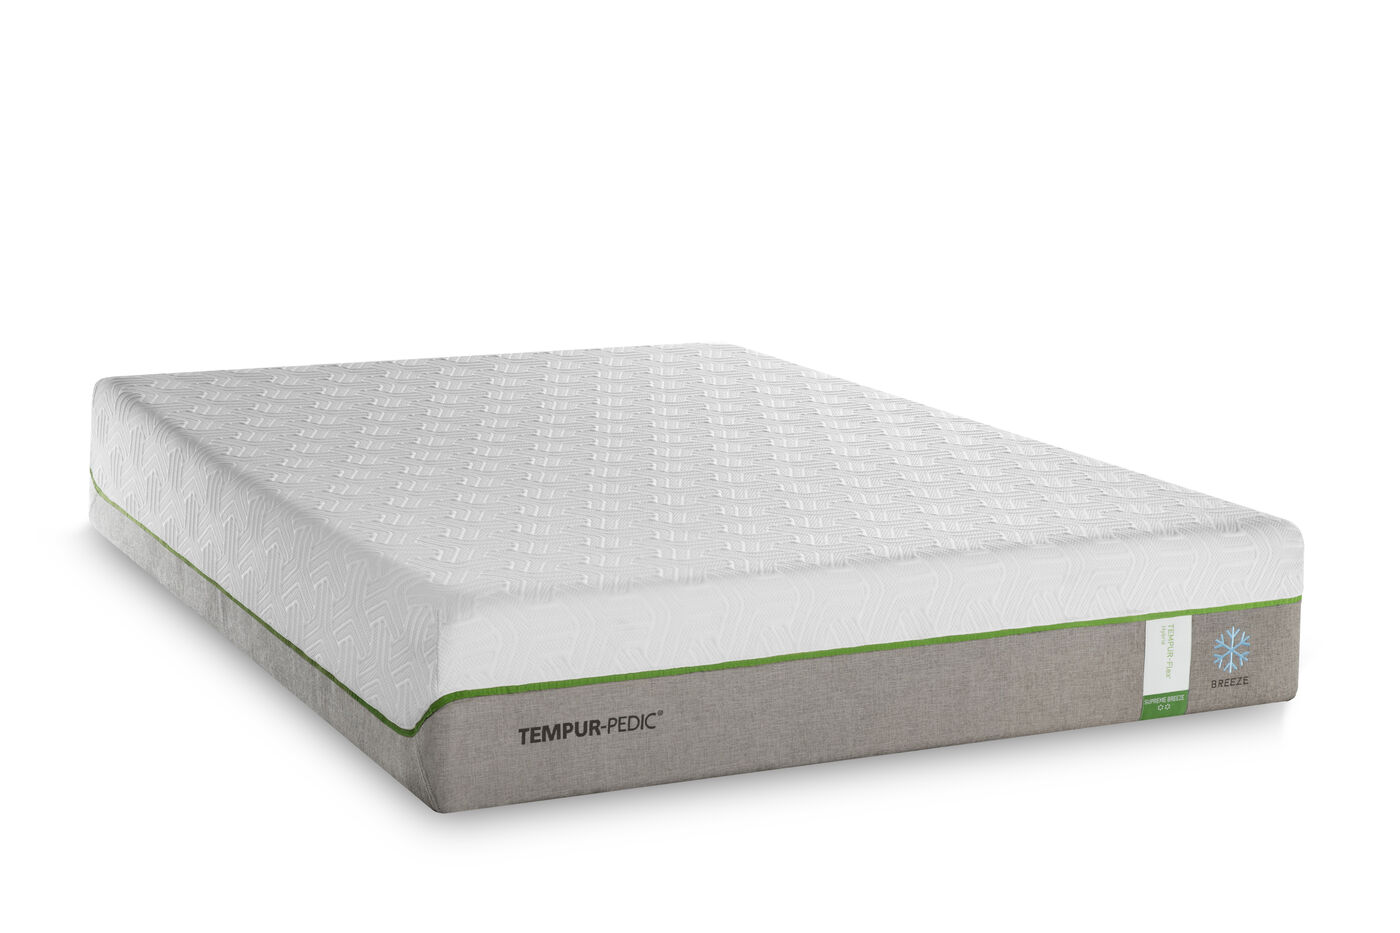 Find the closest store to you and experience the revolutionary Tempur Mattress, Pillow and Bed range. Buying Tempur mattress in Australia has never been easier.